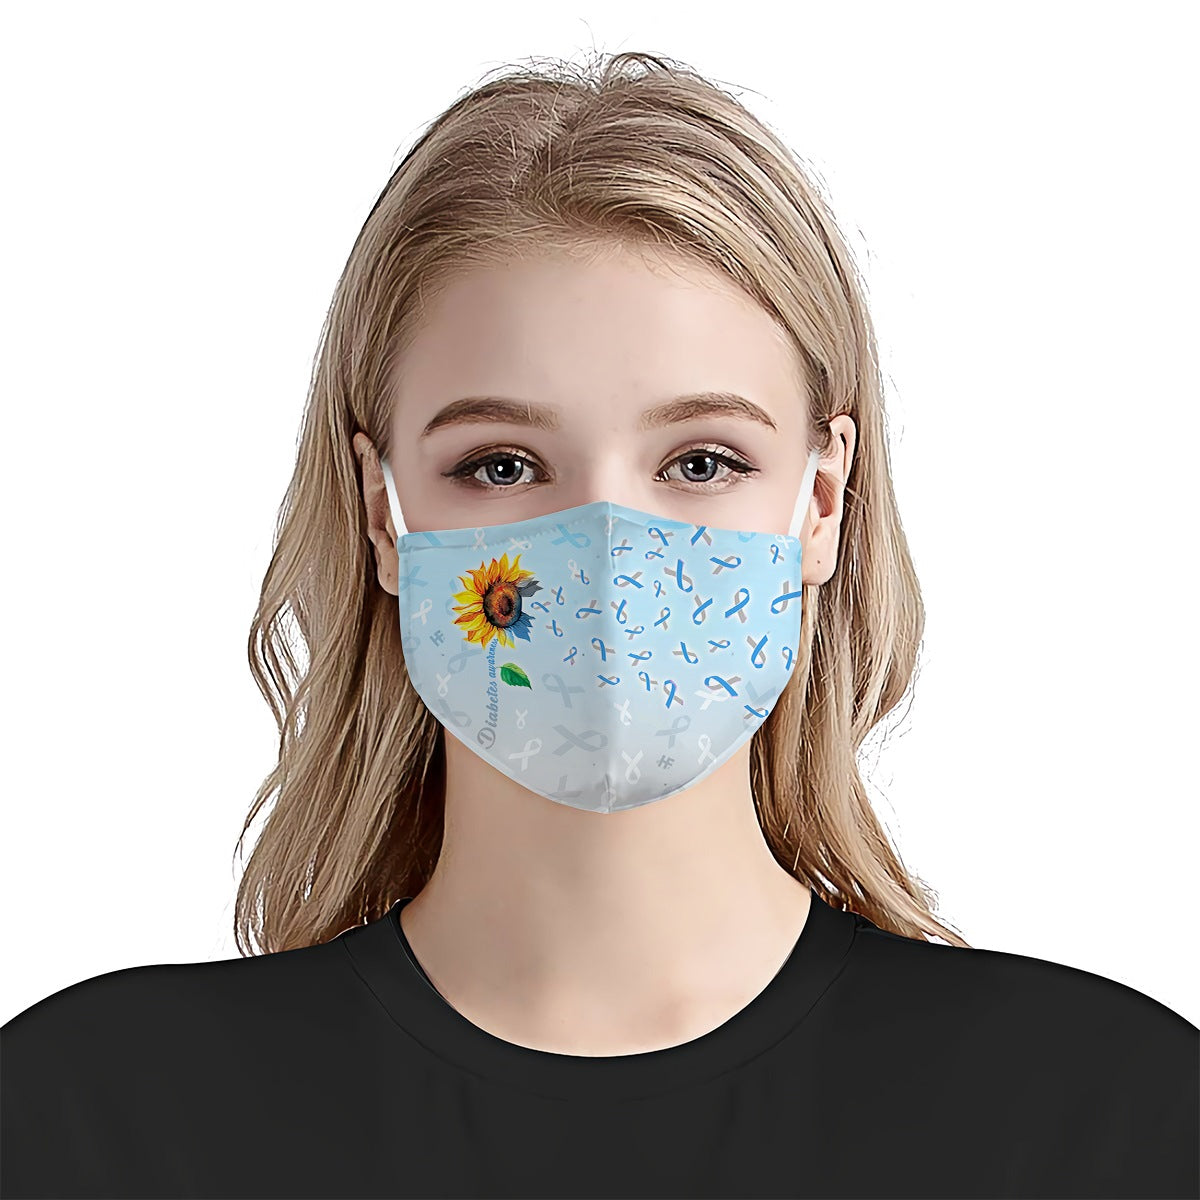 Sunflower Diabetes Awareness Warrior EZ03 1904 Face Mask - Hyperfavor